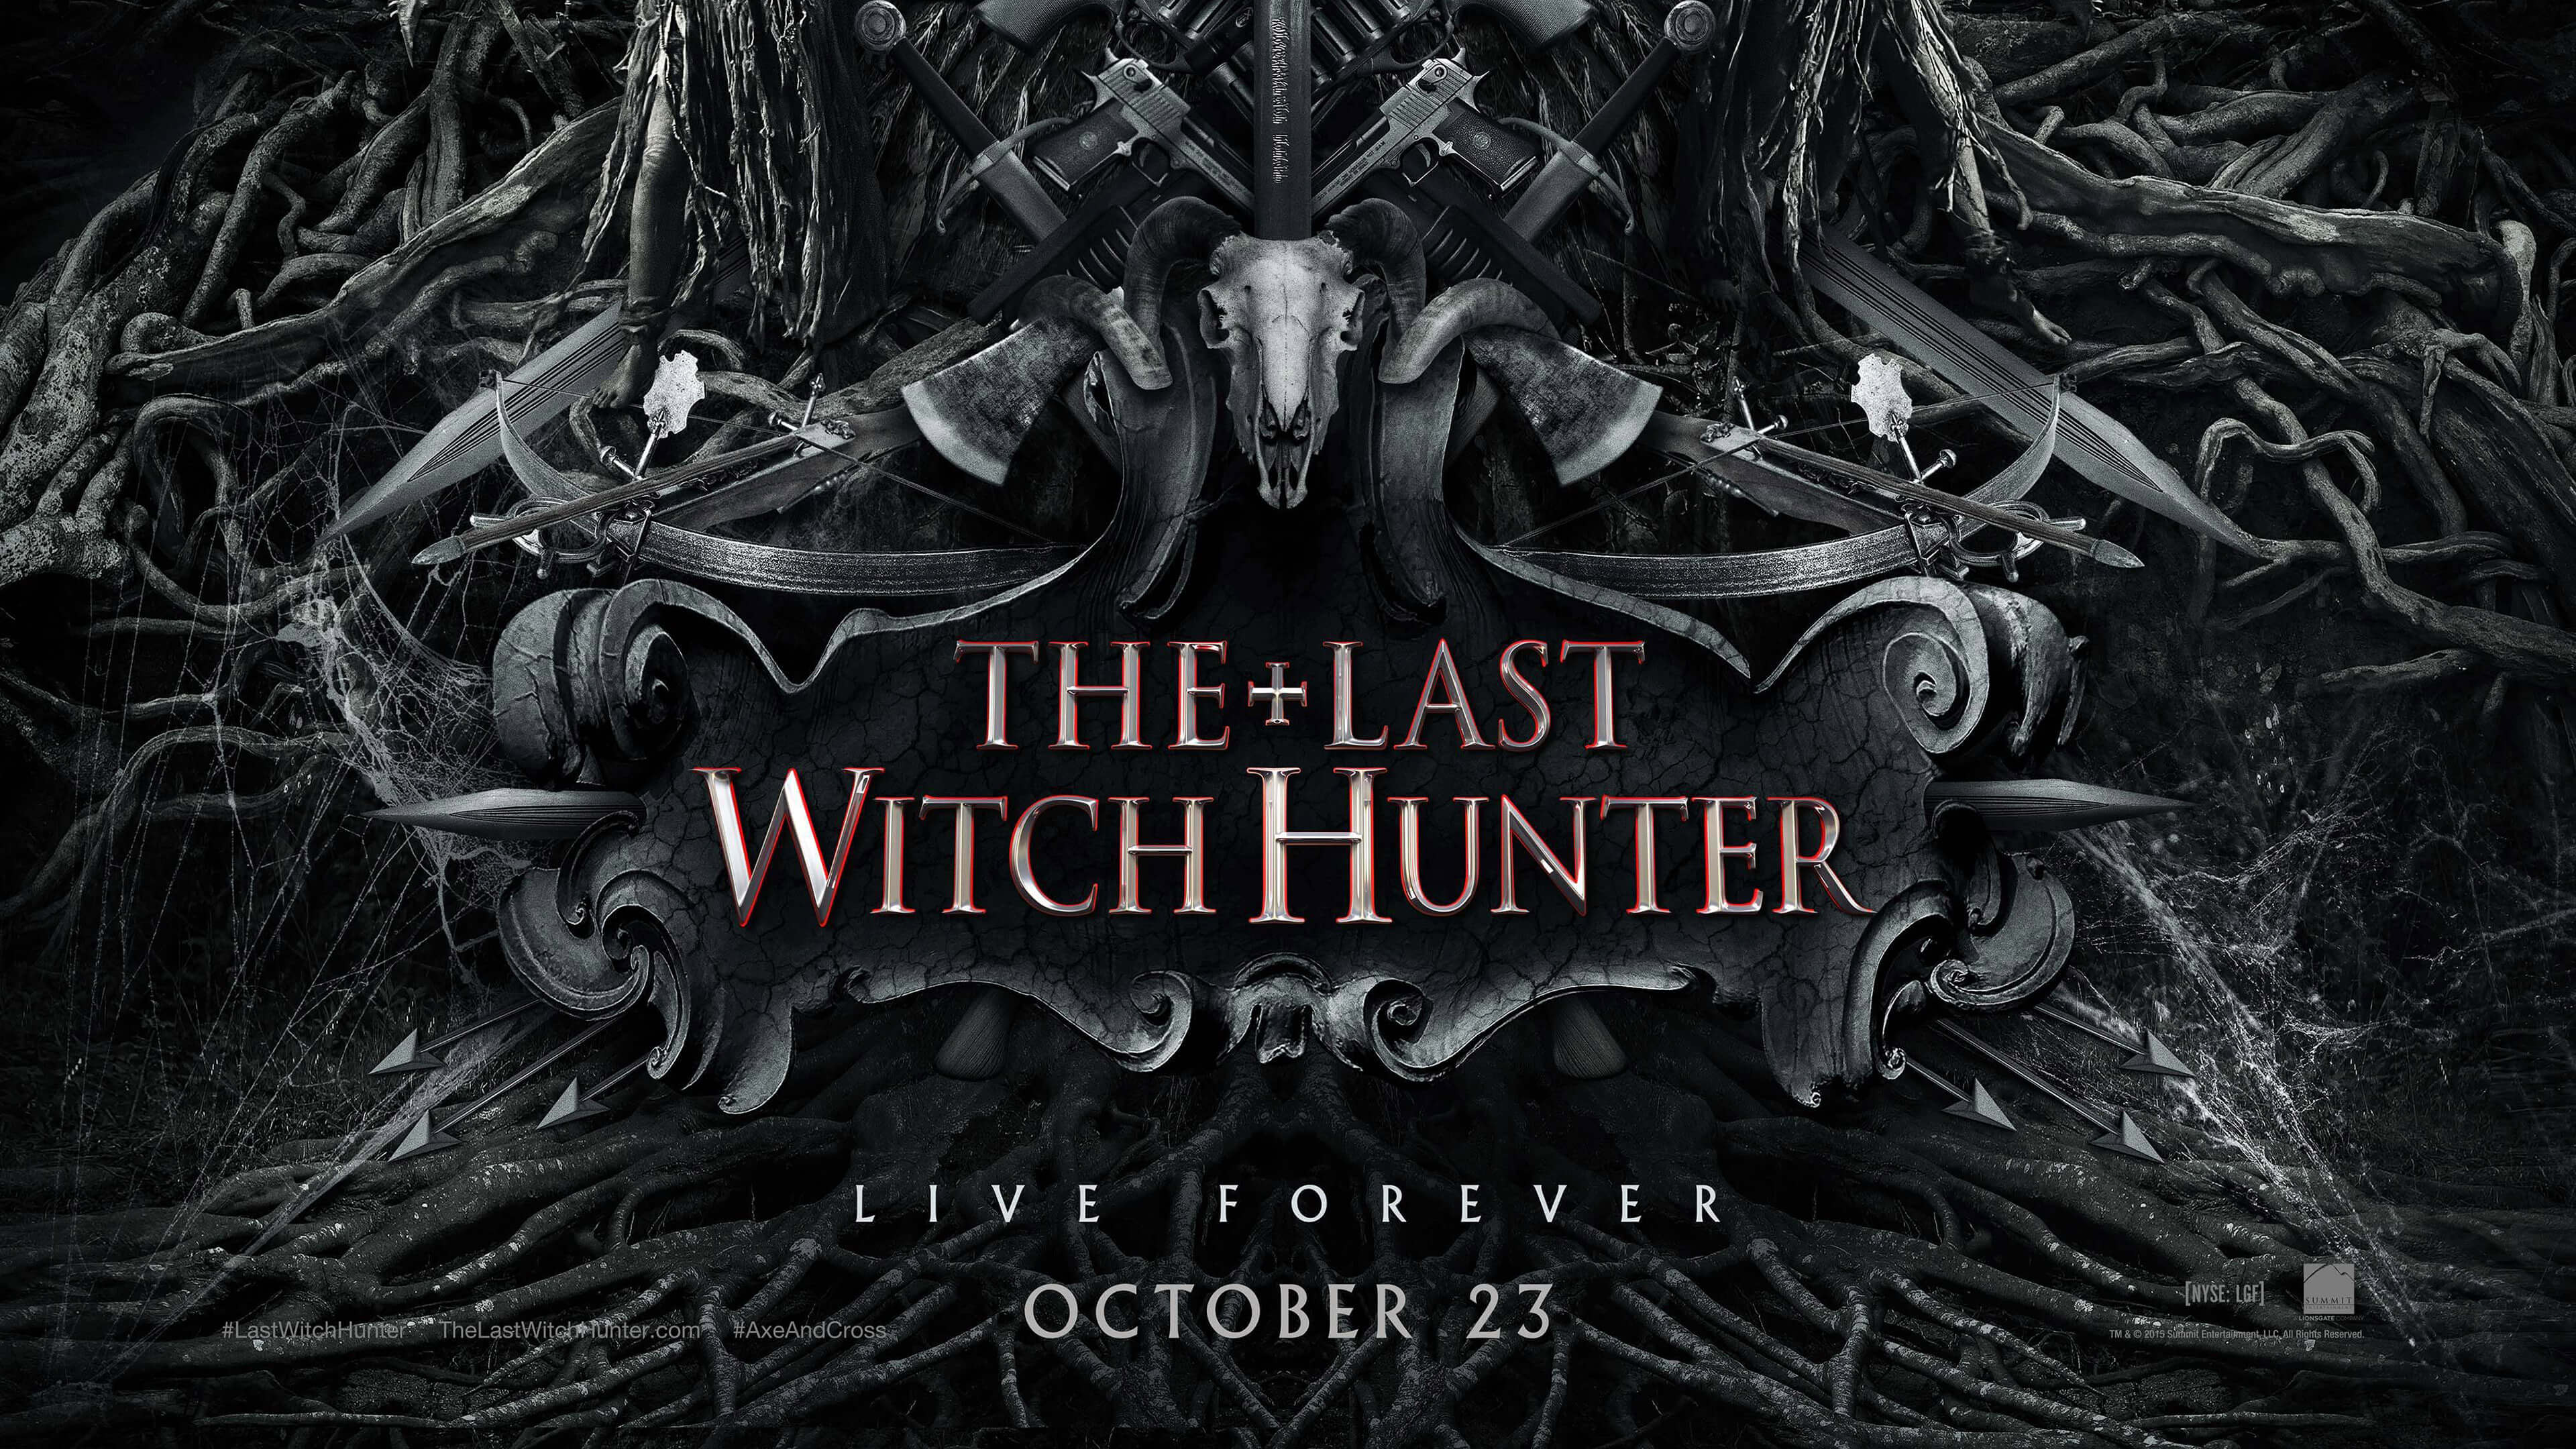 The Last Witch Hunter 2015 Ultra HD Movie Poster Wallpaper 3840x2160